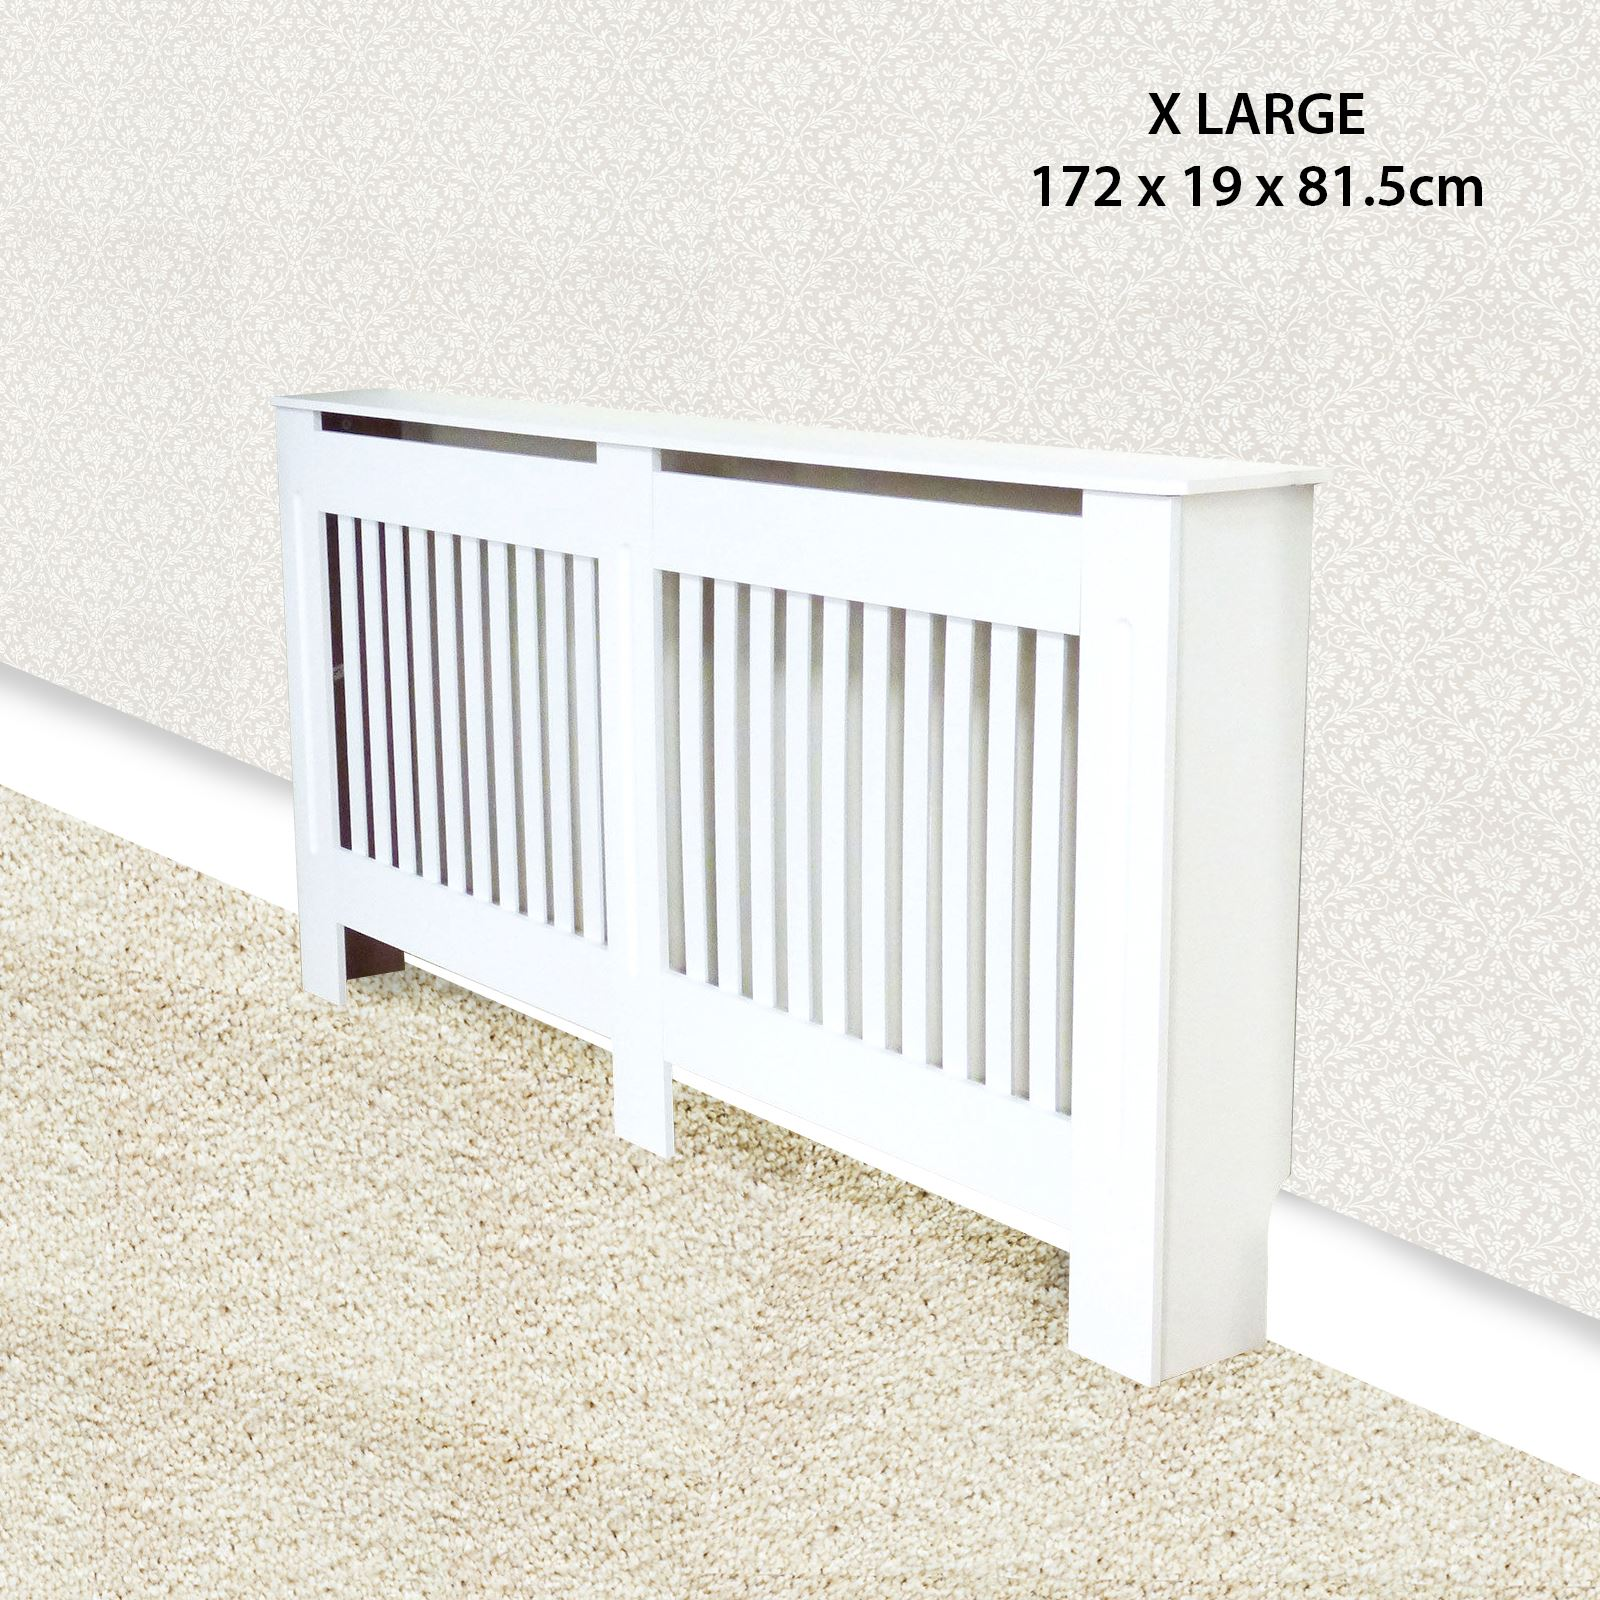 Traditional-Radiator-Cover-Cabinet-Vertical-Slatted-MDF-Wood-Small-Large-Unit thumbnail 7